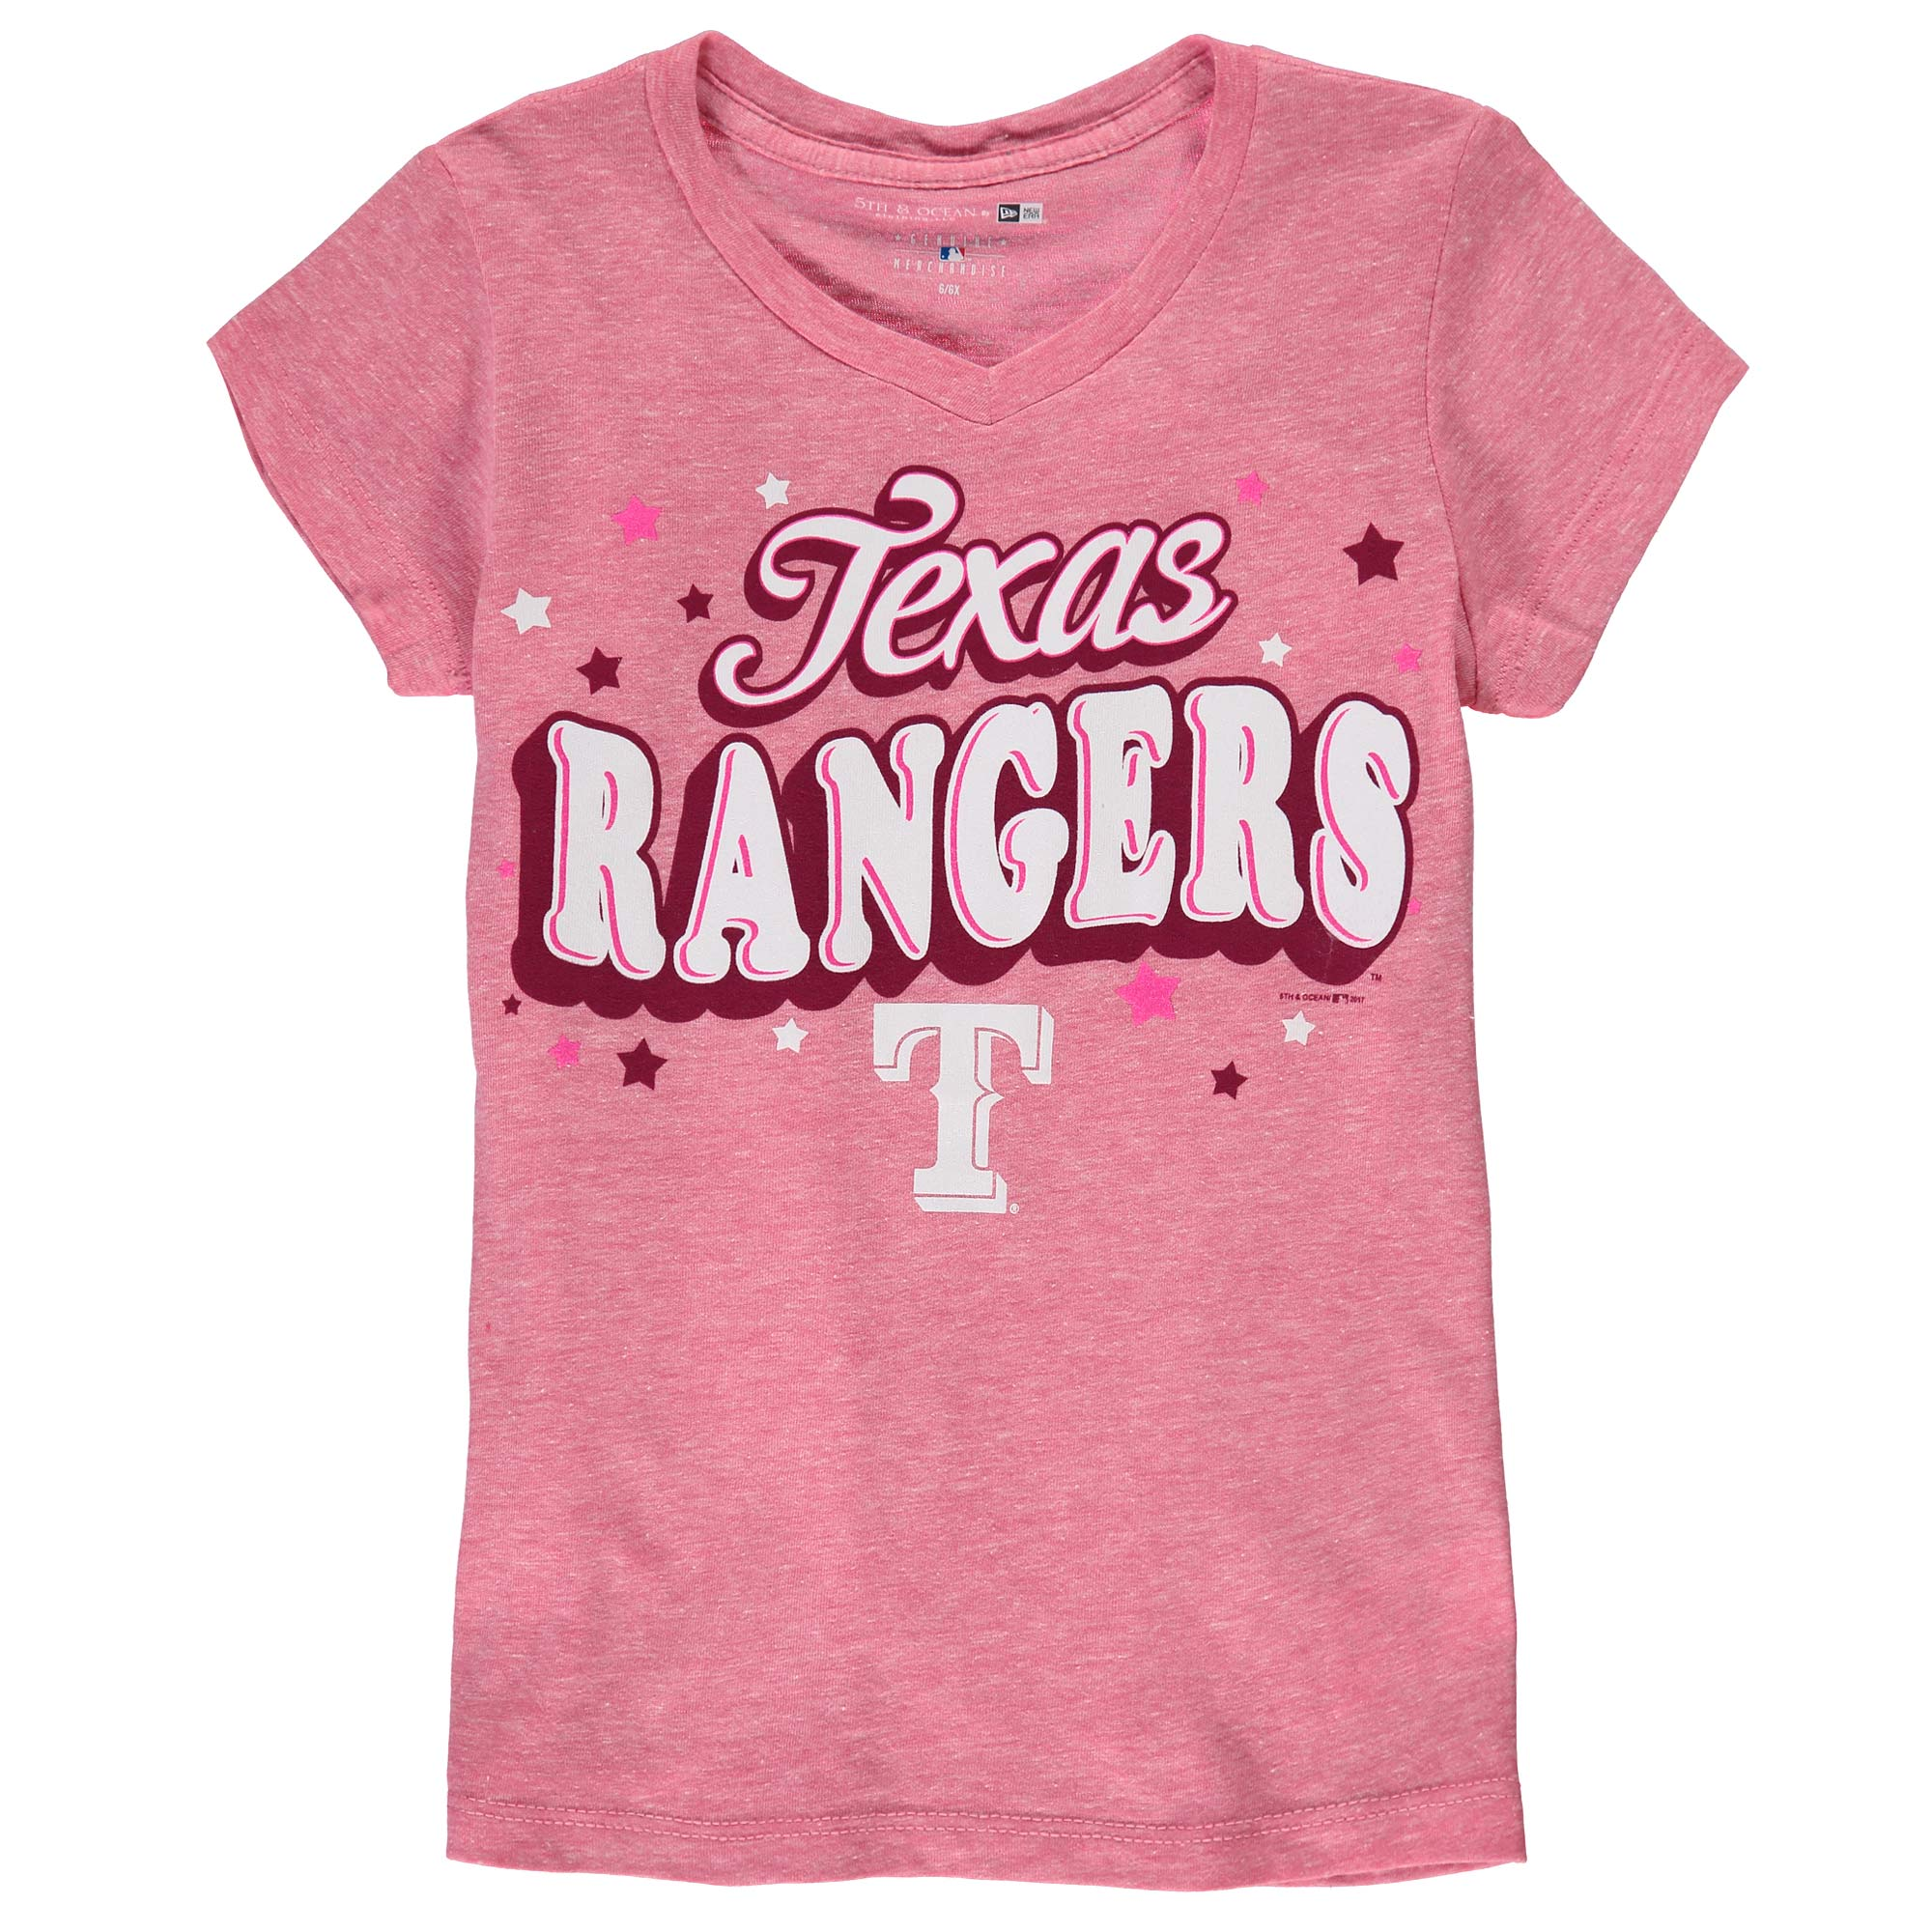 Texas Rangers Girls Youth Stars Tri-Blend V-Neck T-Shirt - Pink